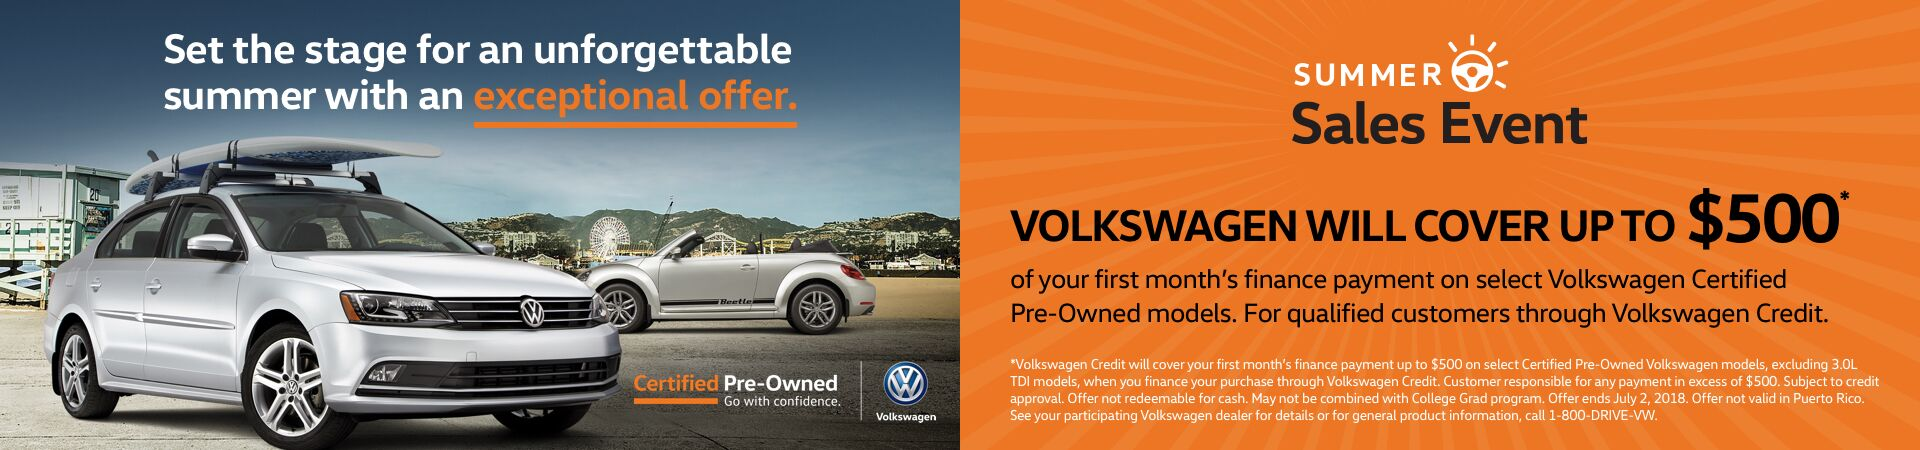 Summer Volkswagen Certified Pre-Owned Sales Event